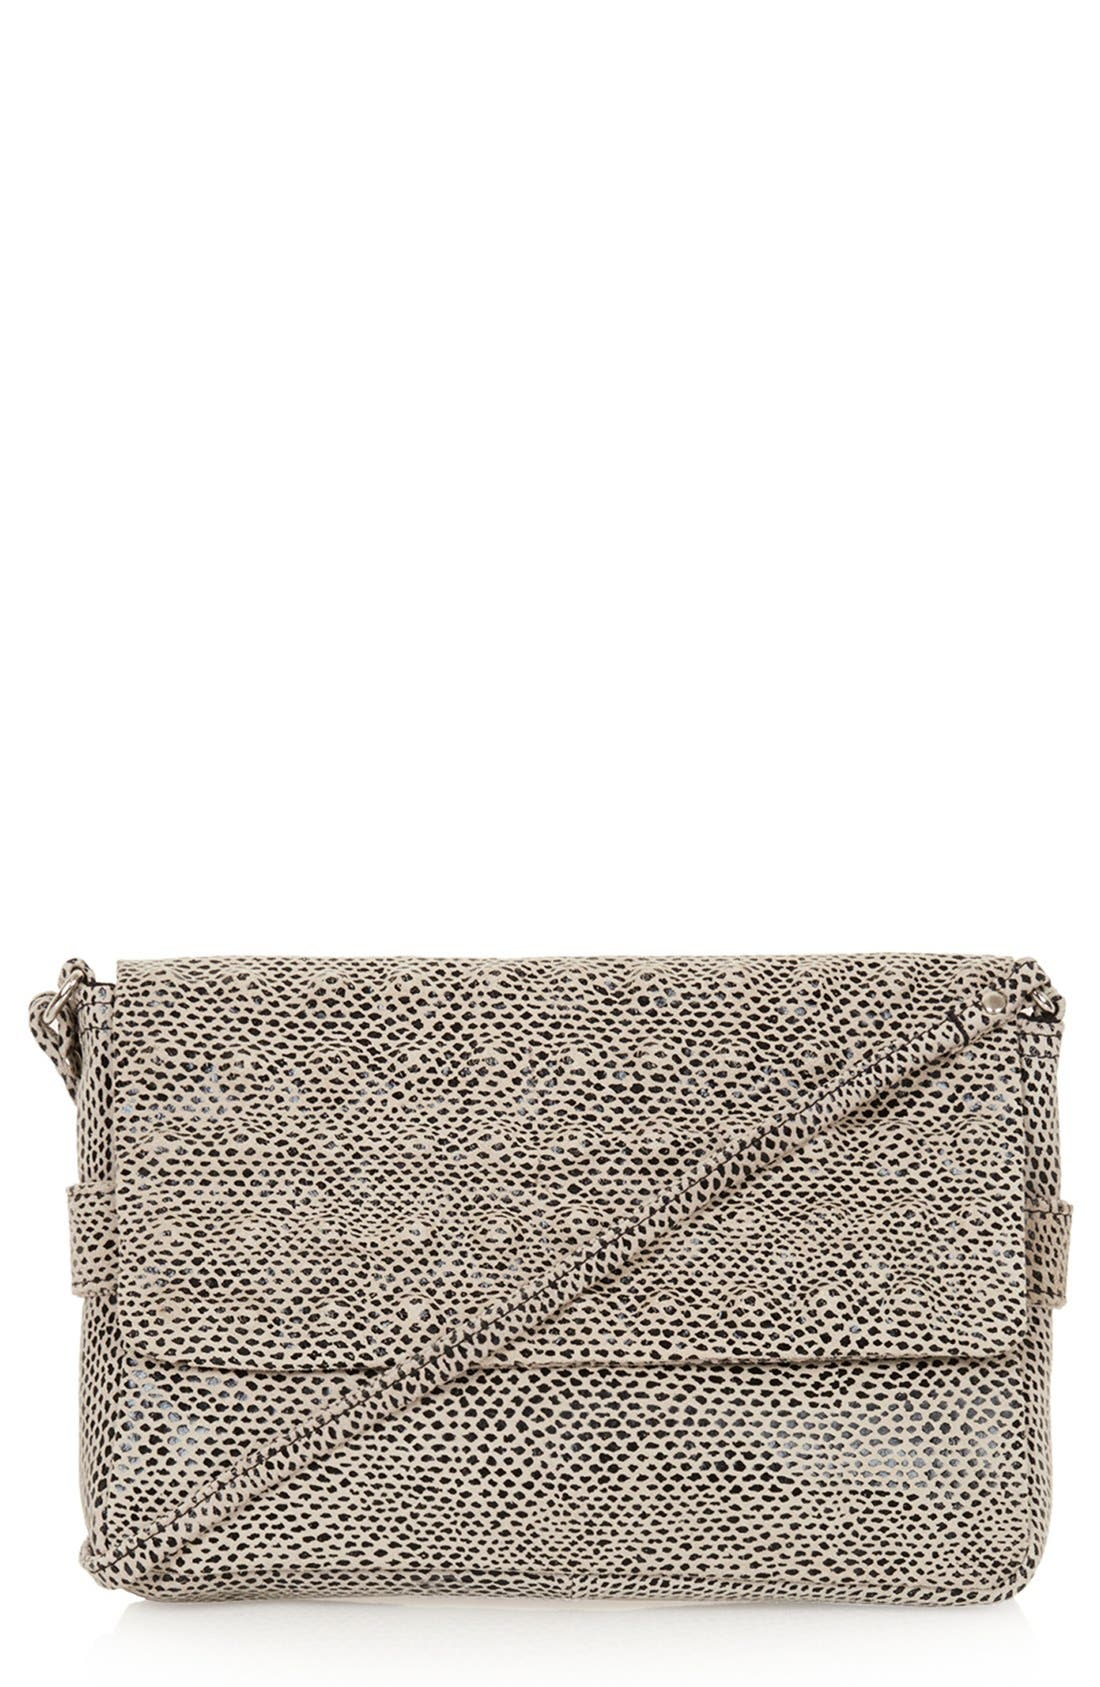 Main Image - Topshop Snake Embossed Crossbody Bag